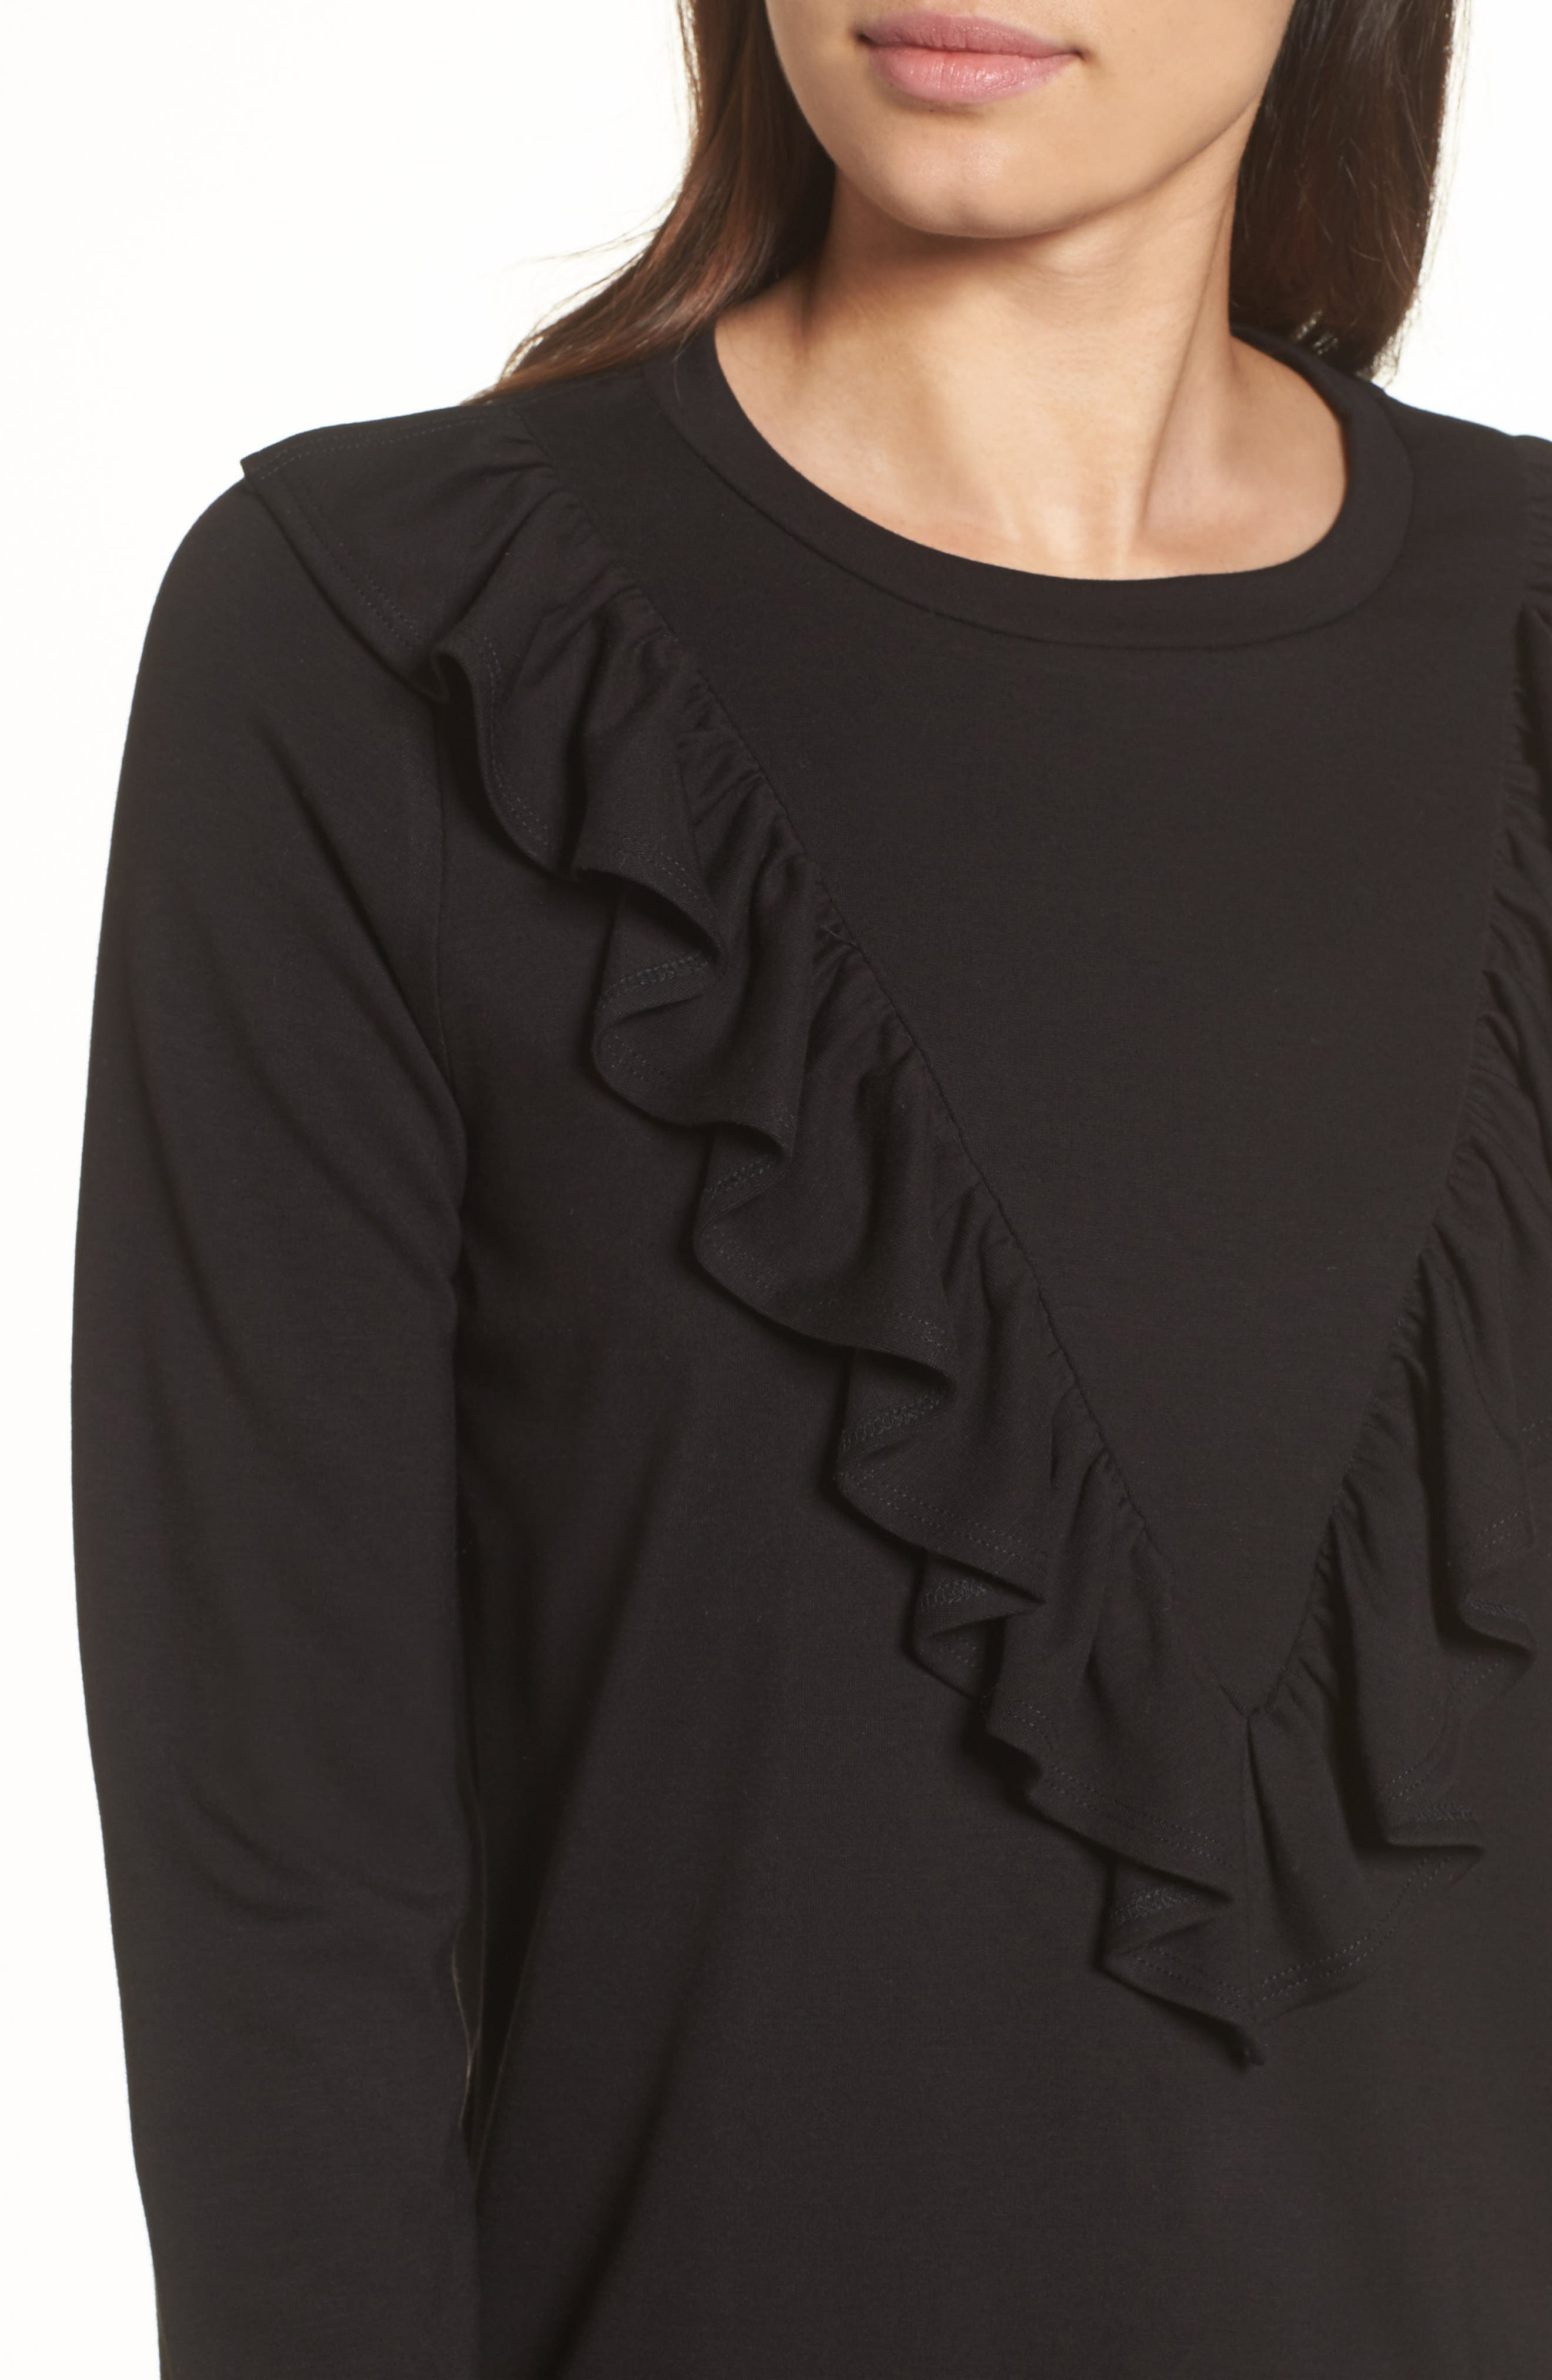 Ruffle Ponte Sweater,                             Alternate thumbnail 4, color,                             Black